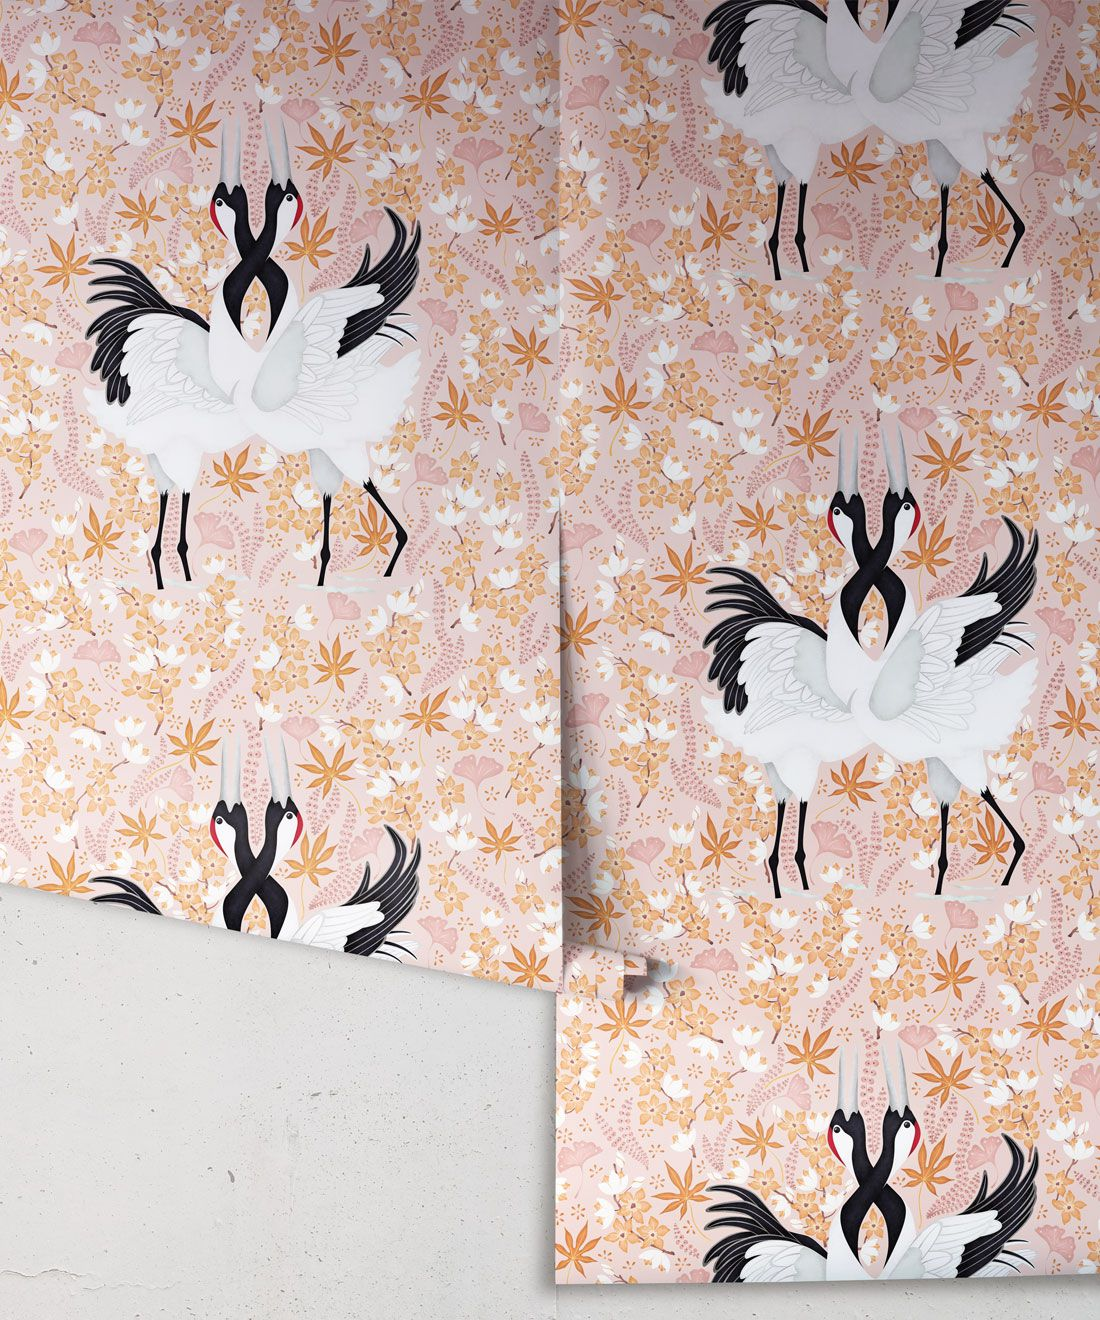 Japanese Cranes Wallpaper • Bird Wallpaper • Pink Wallpaper Drops